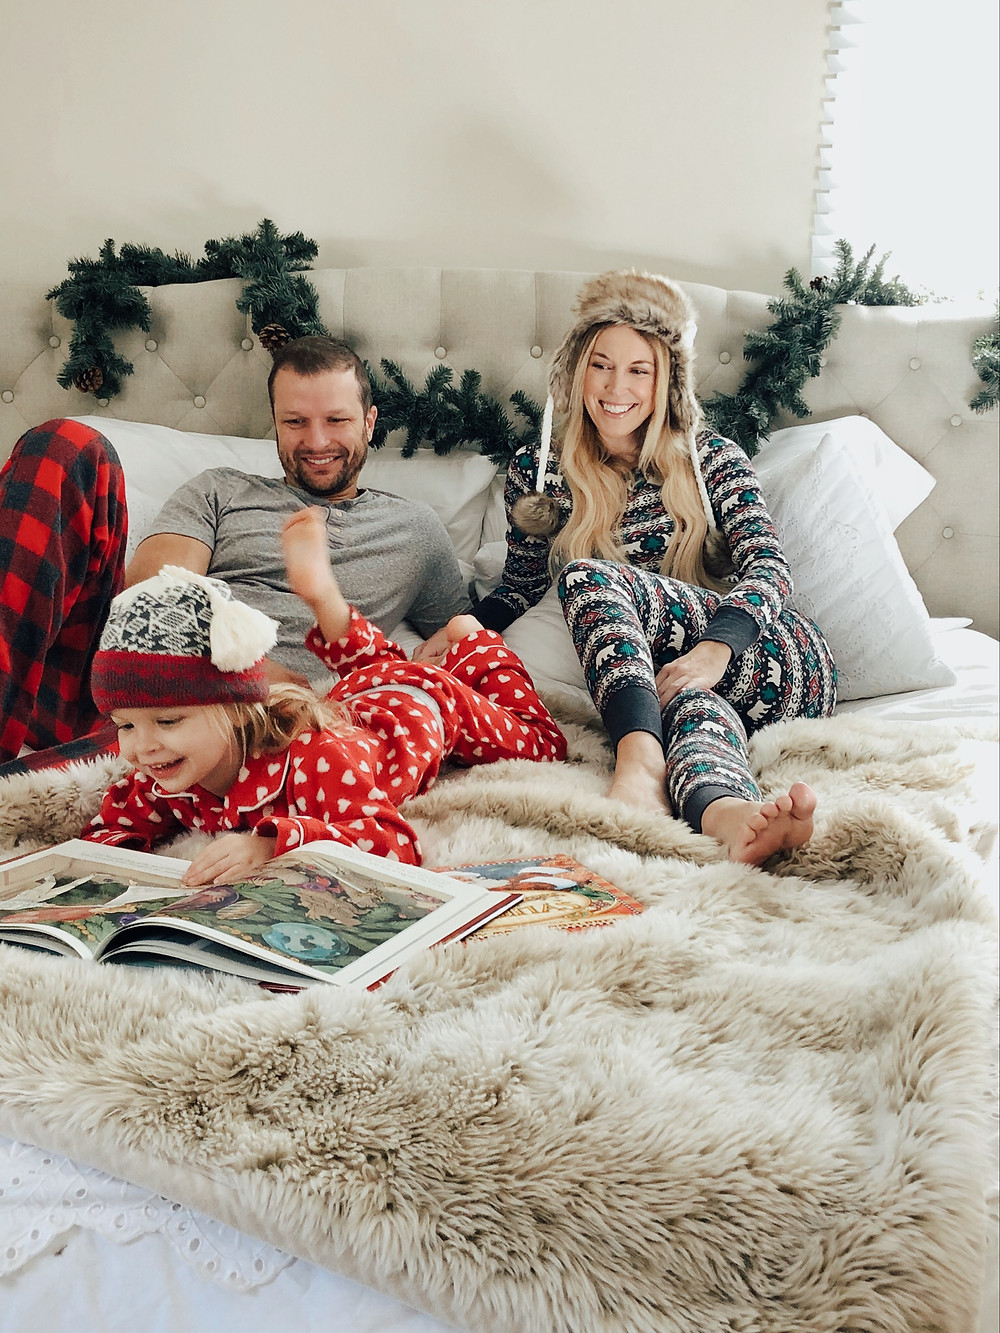 parents watch toddler girl read a book in bed wearing Christmas pajamas.